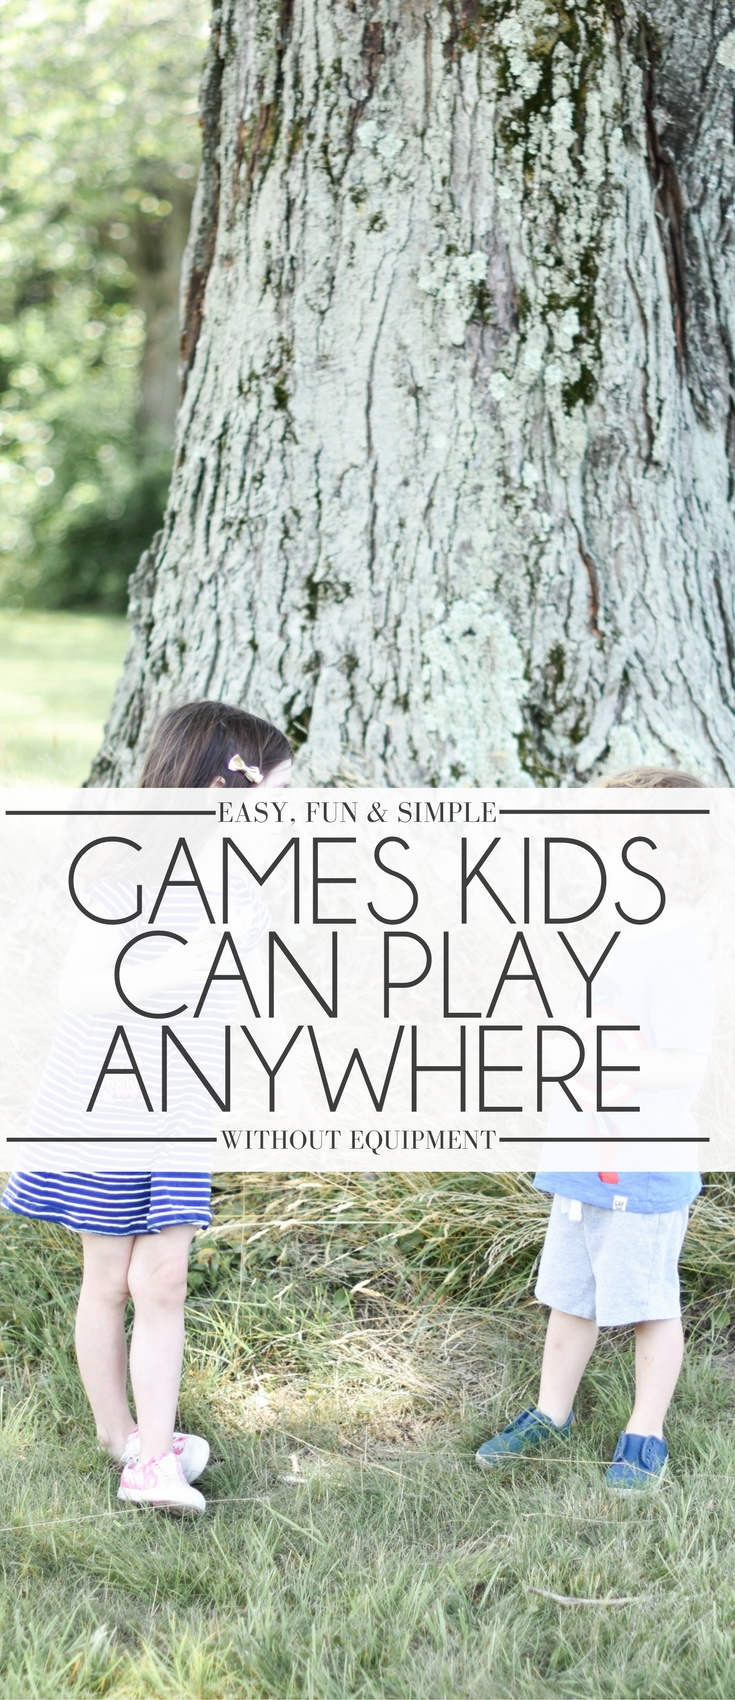 looking for ideas on how to occupy a preschooler or toddler? here are 6 games to play with a preschooler with no equipment needed